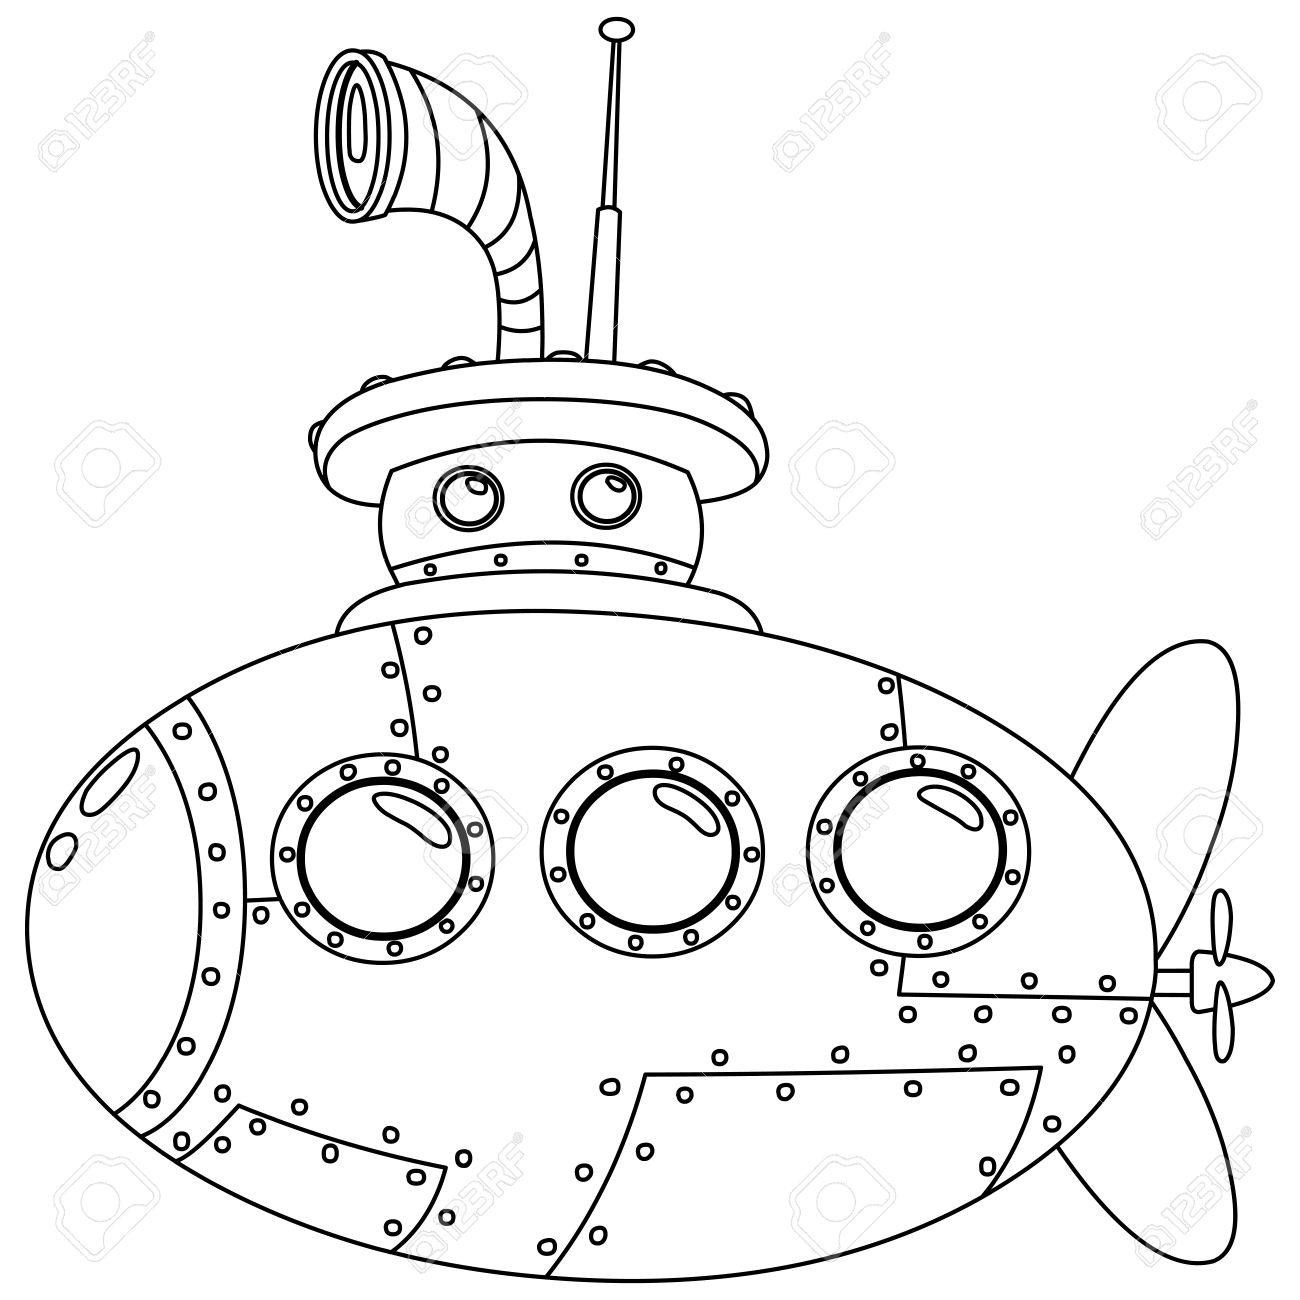 Outlined Submarine Vector Illustration Coloring Page Royalty Free